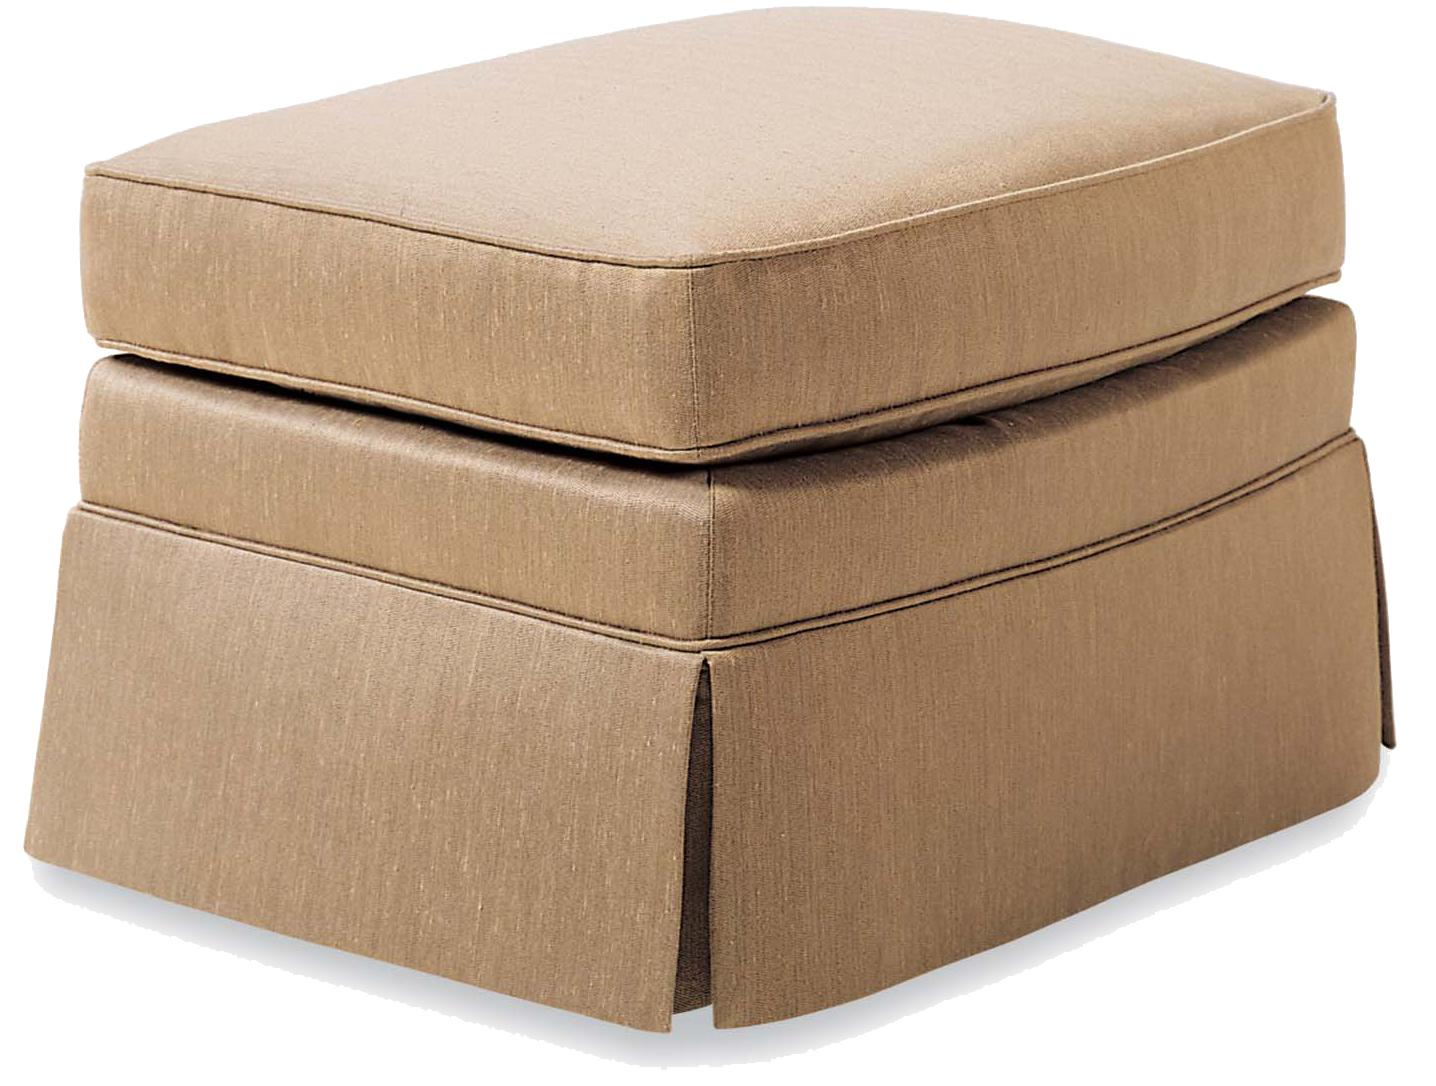 Fine Upholstered Accents Ottoman    by Jessica Charles at Stuckey Furniture